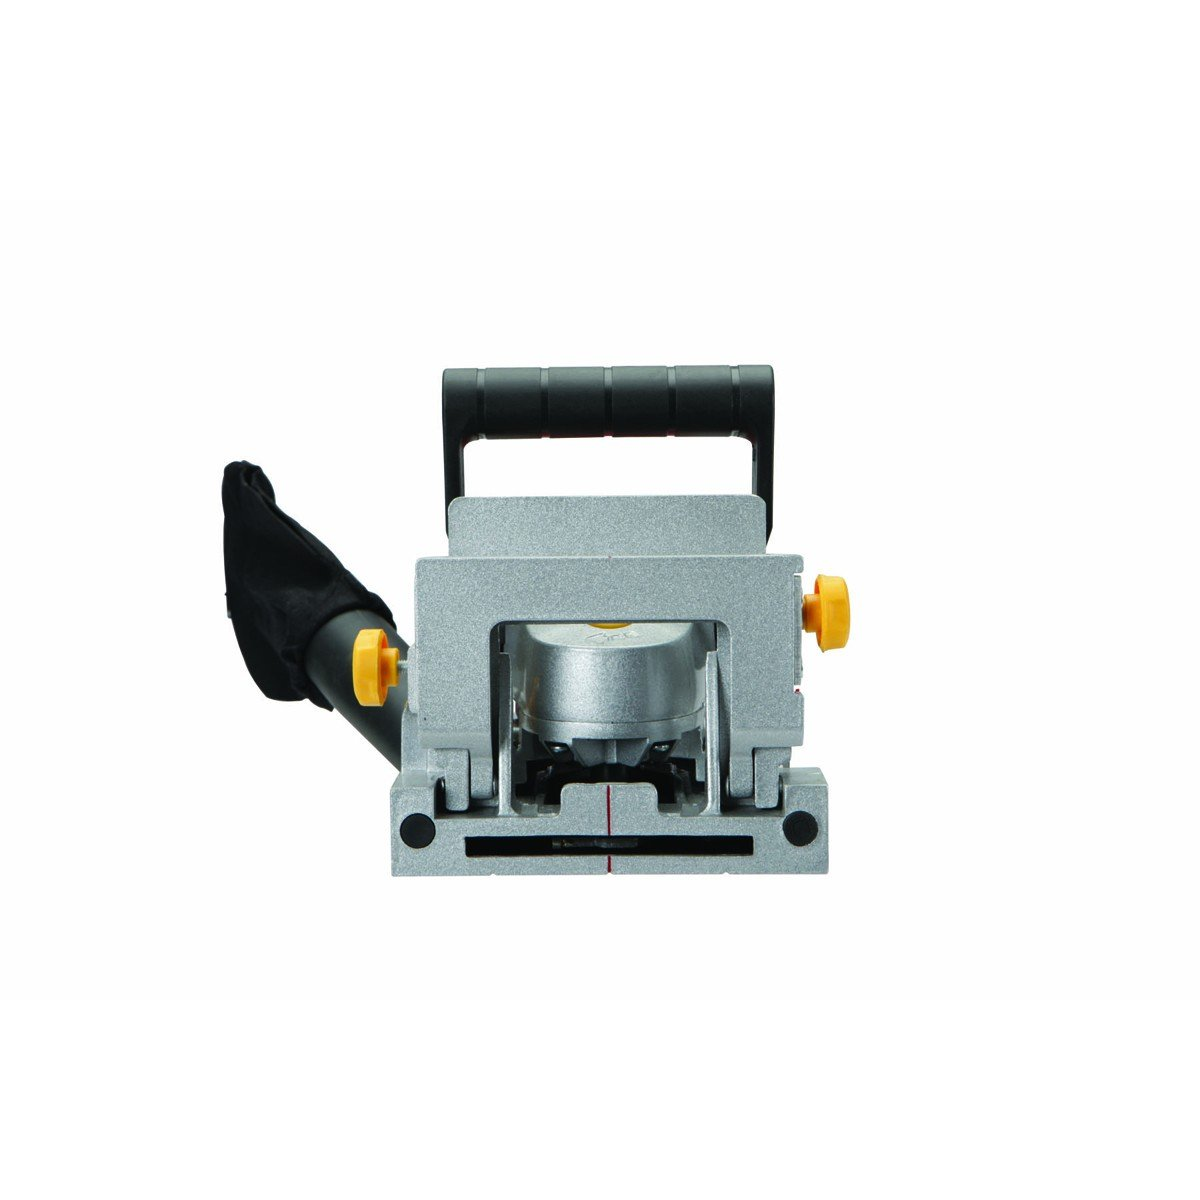 4'' Plate Joiner 120 volts, 6 amps, 10,000 RPM, 60 Hz, single phase; Includes carbide tipped blade and arbor wrench